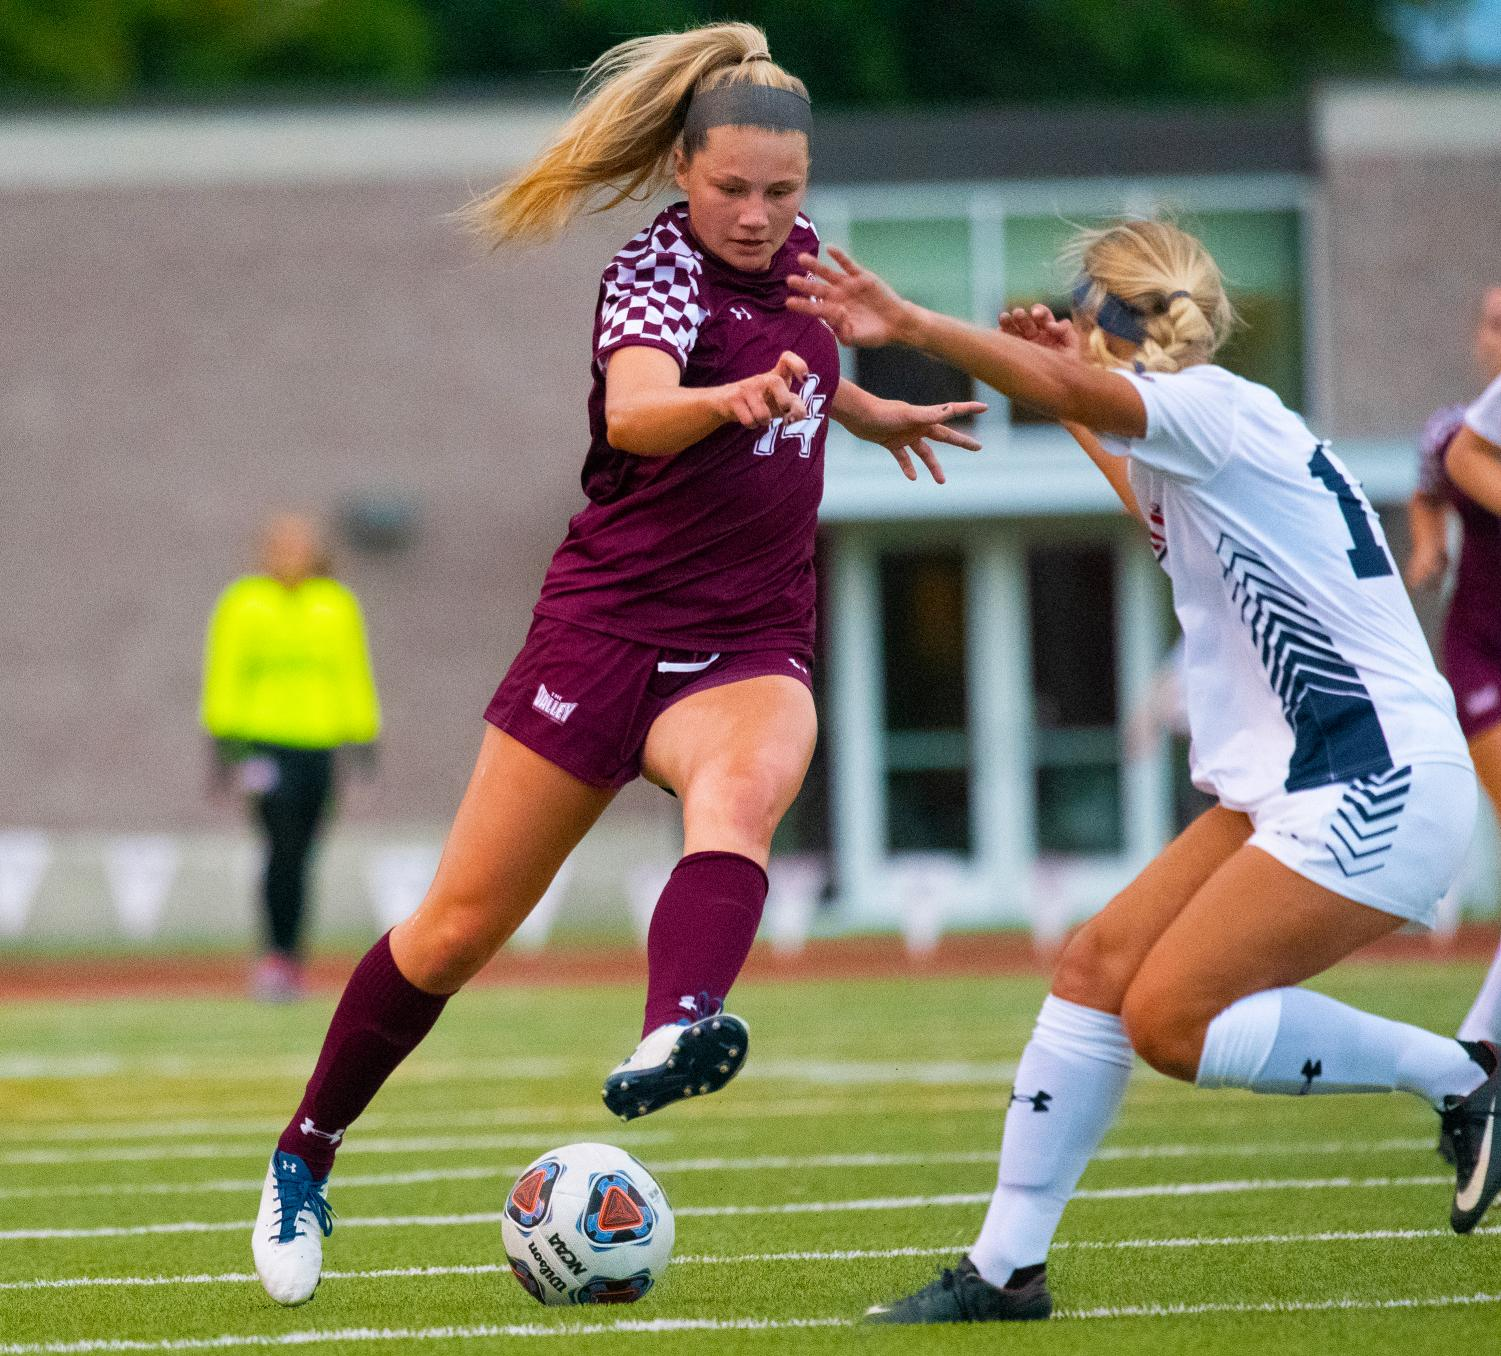 Kaitlin+Ducharme+kicks+the+ball+on+Friday%2C+Aug.+30%2C+2019+during+the+Salukis%27+1-0+win+against+the+Belmont+Bruins+at+the+Lew+Hartzog+Track+%26+Field+Complex.